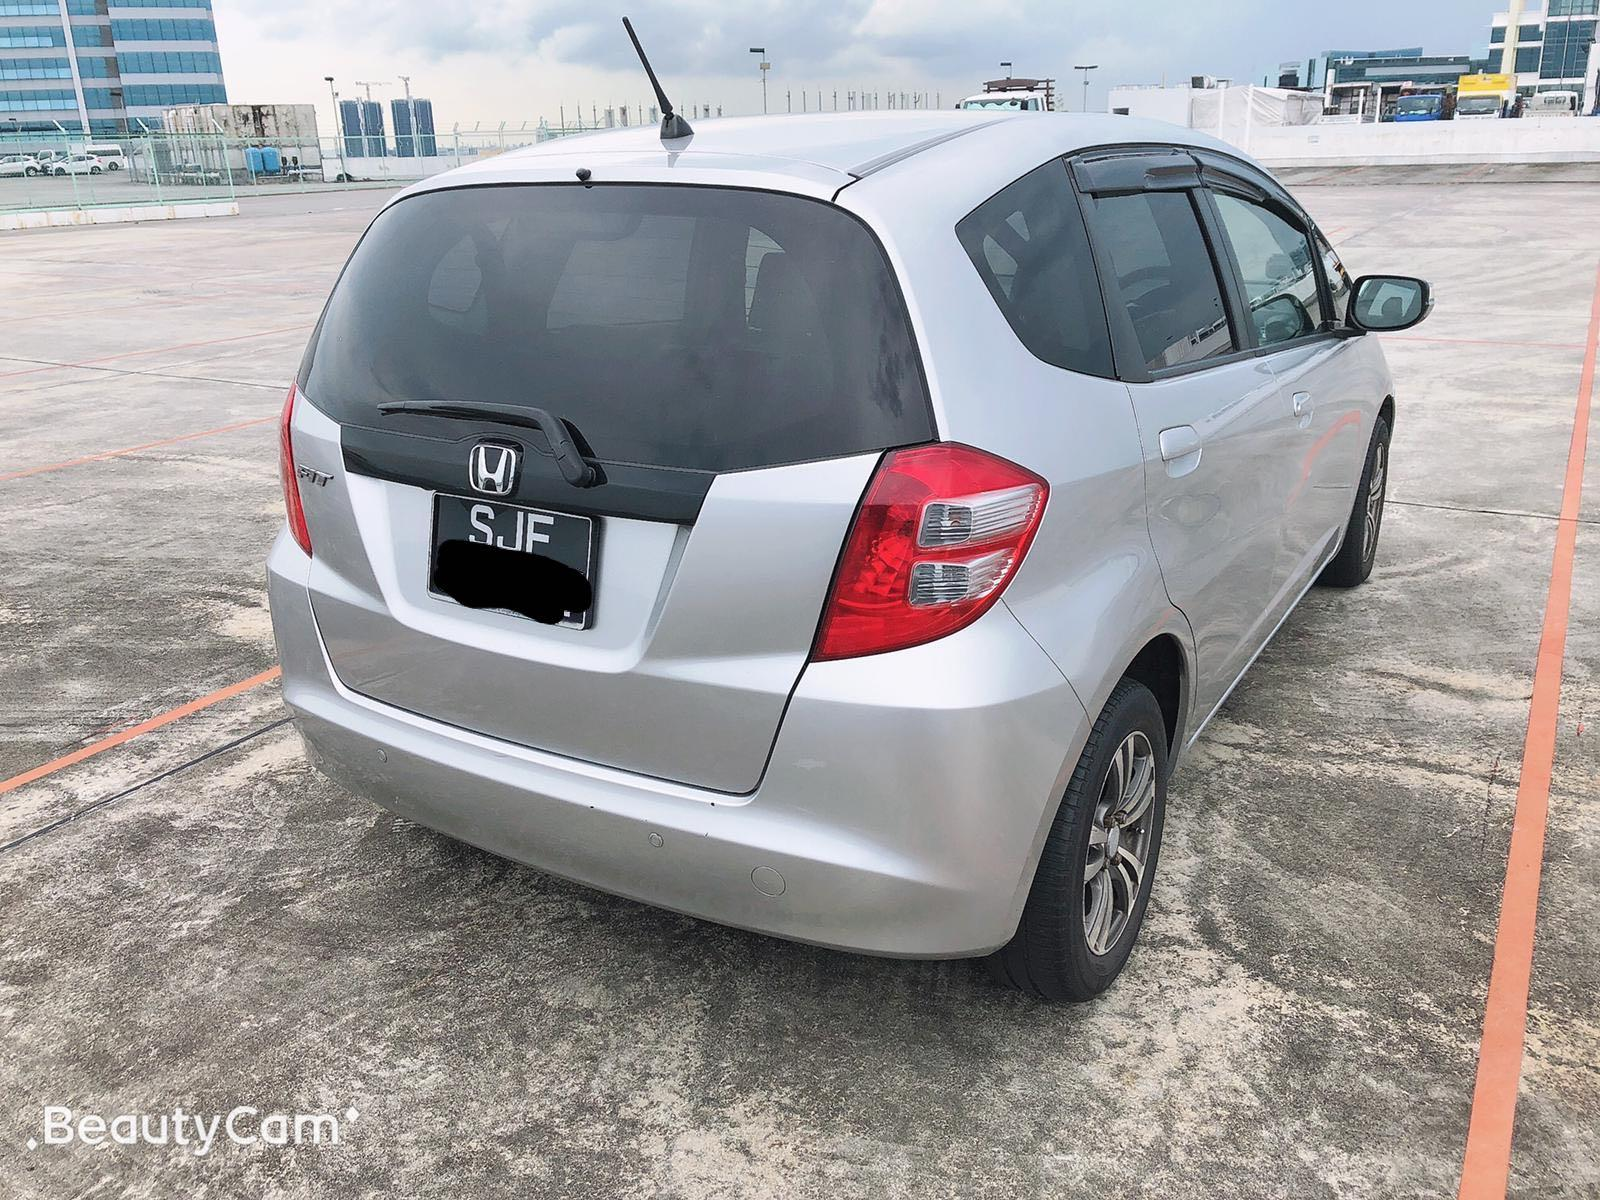 HONDA FIT LELONG CHEAP RENTAL P PLATE WELCOME DAILY AND LONG TERM